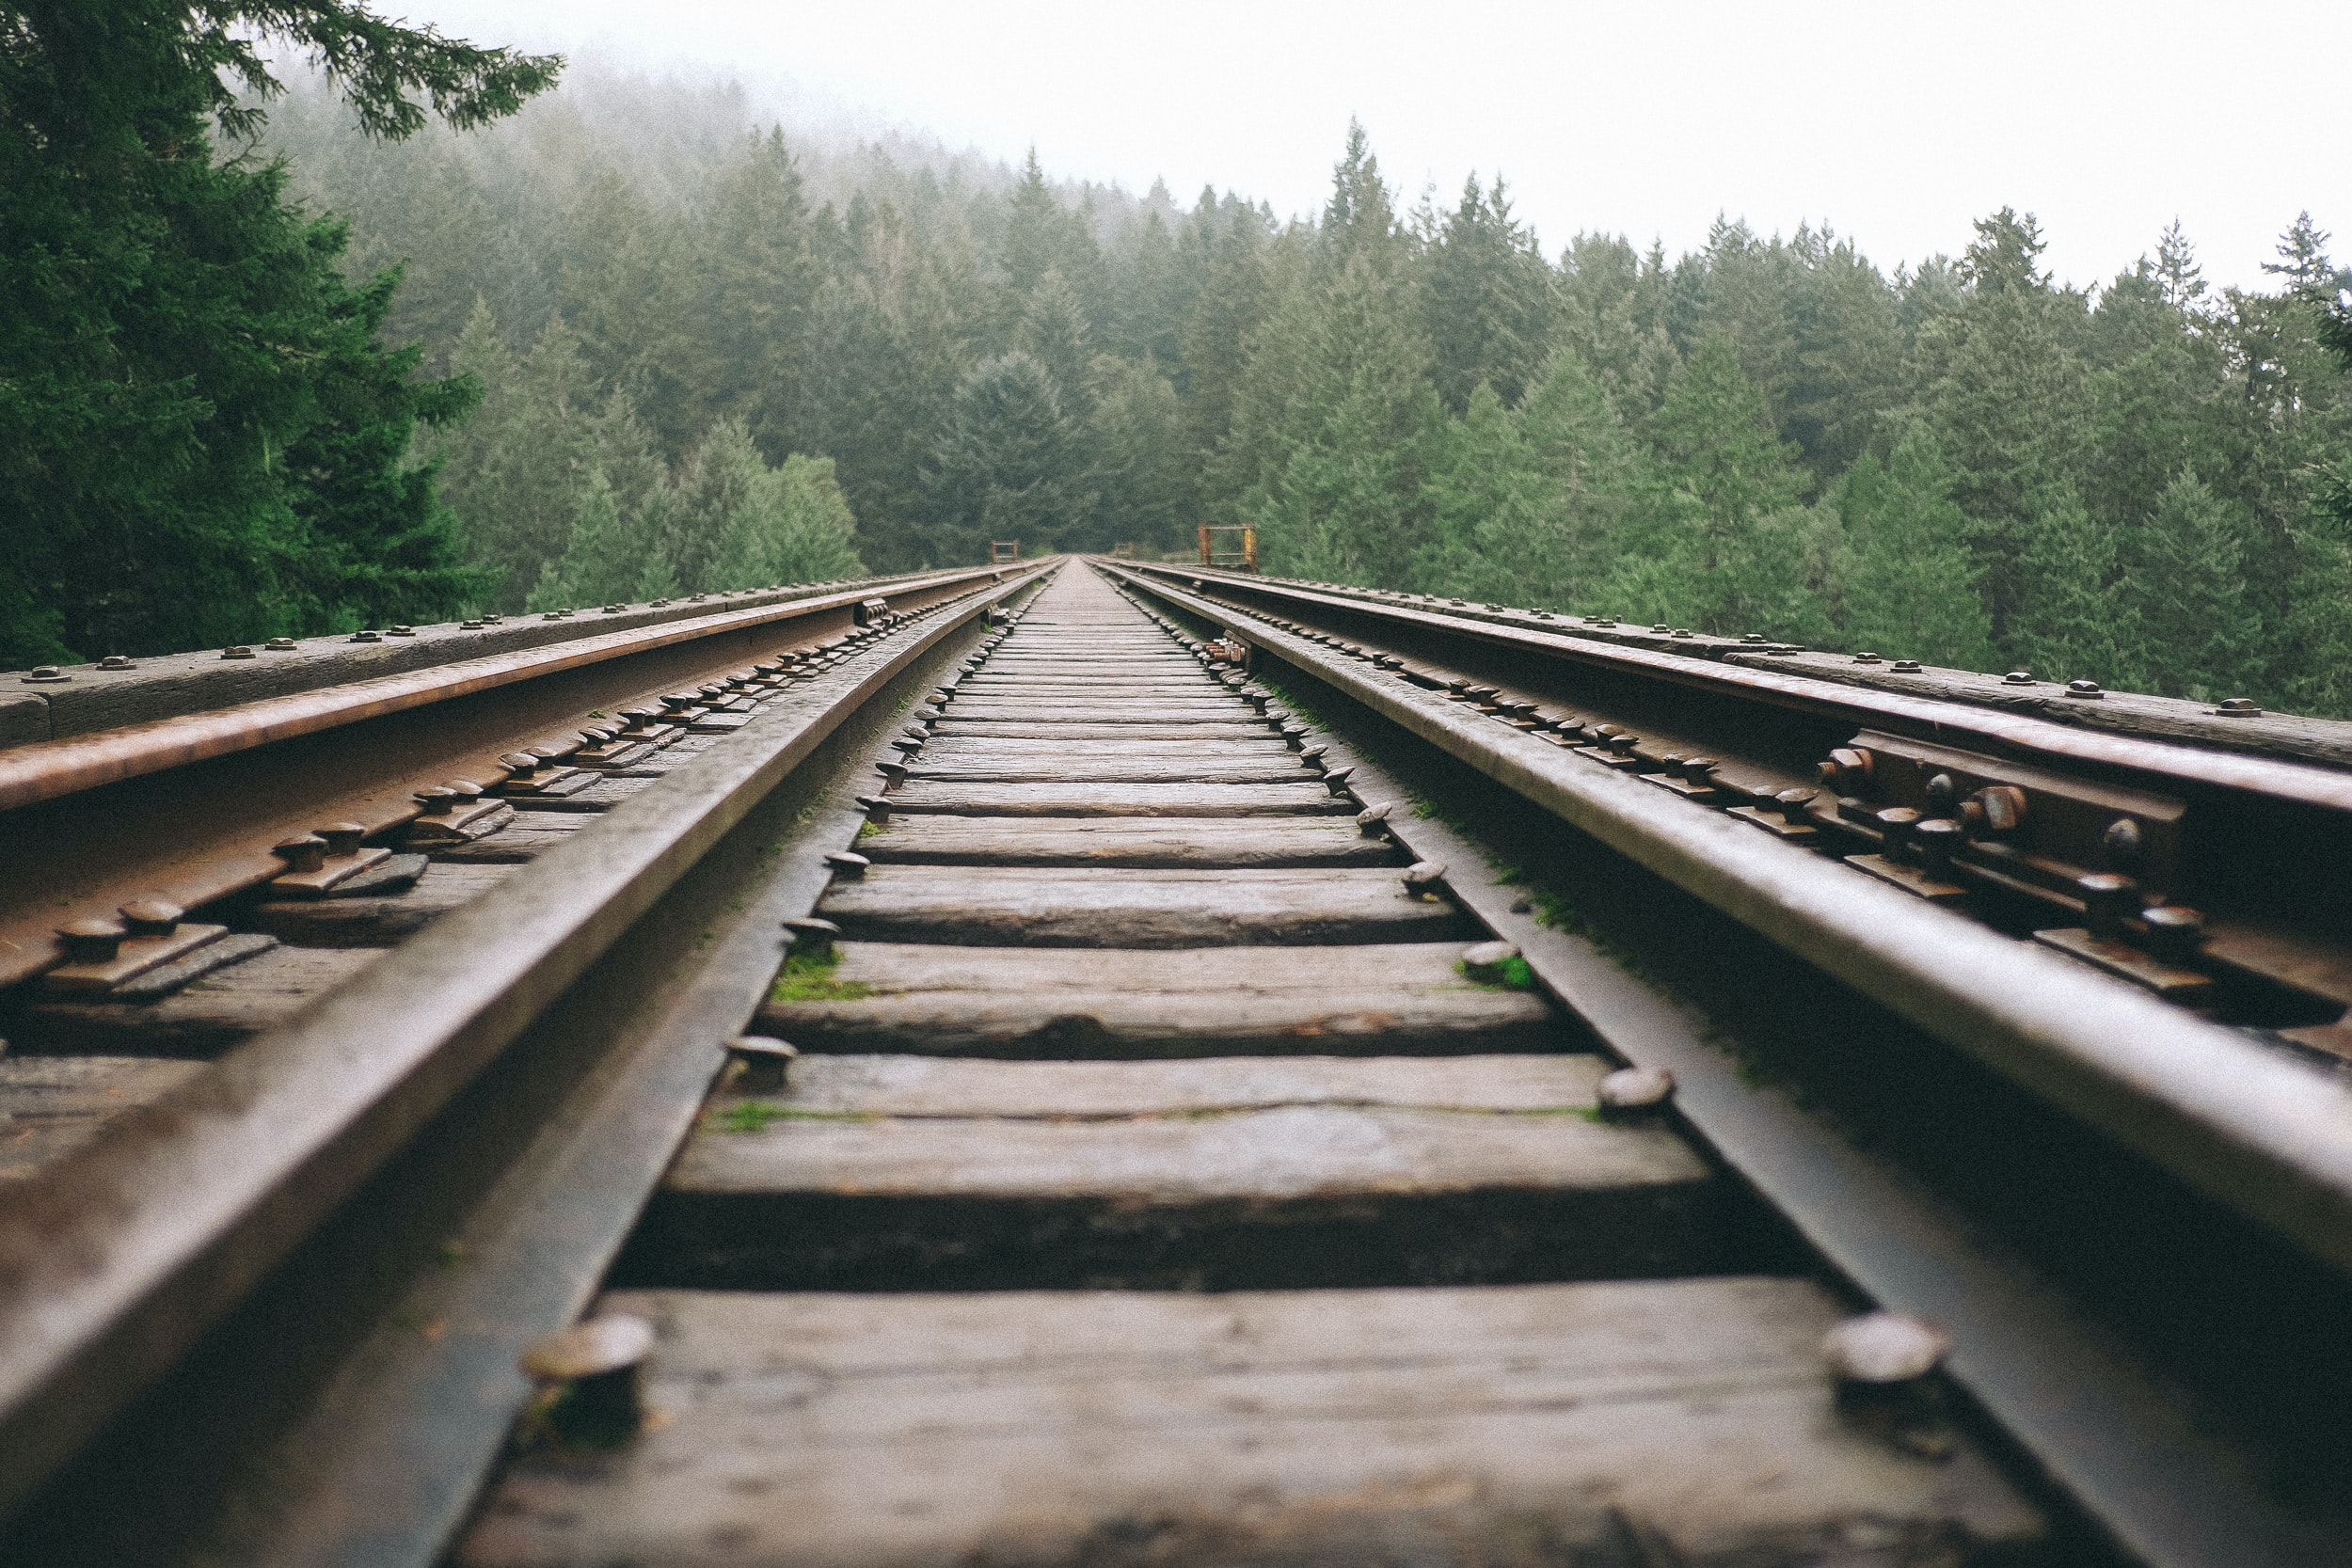 A low-angle shot of a railroad track running straight through a forest